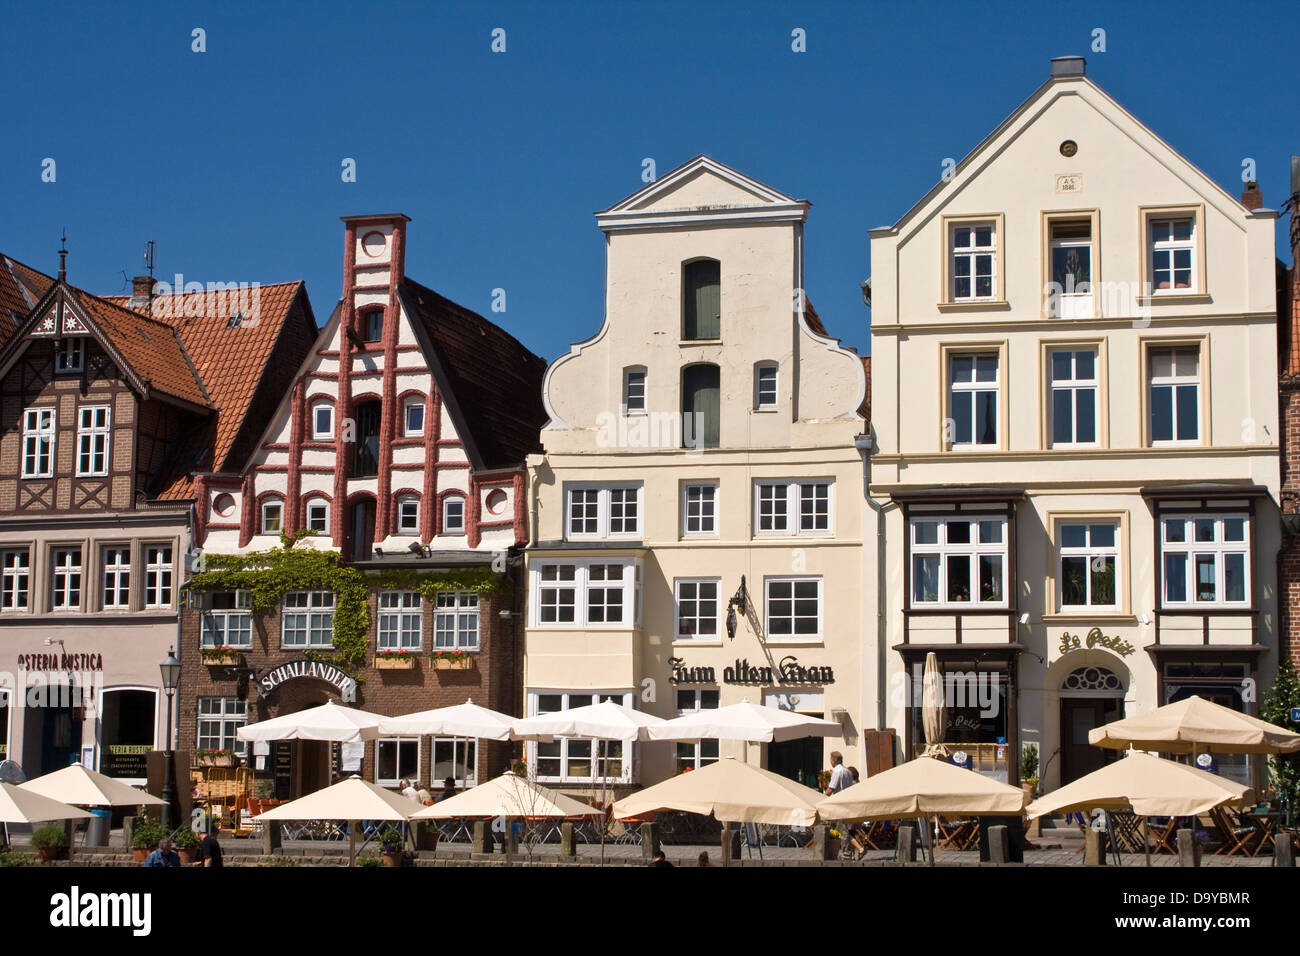 germany lueneburg old town stockfotos germany lueneburg old town bilder seite 2 alamy. Black Bedroom Furniture Sets. Home Design Ideas